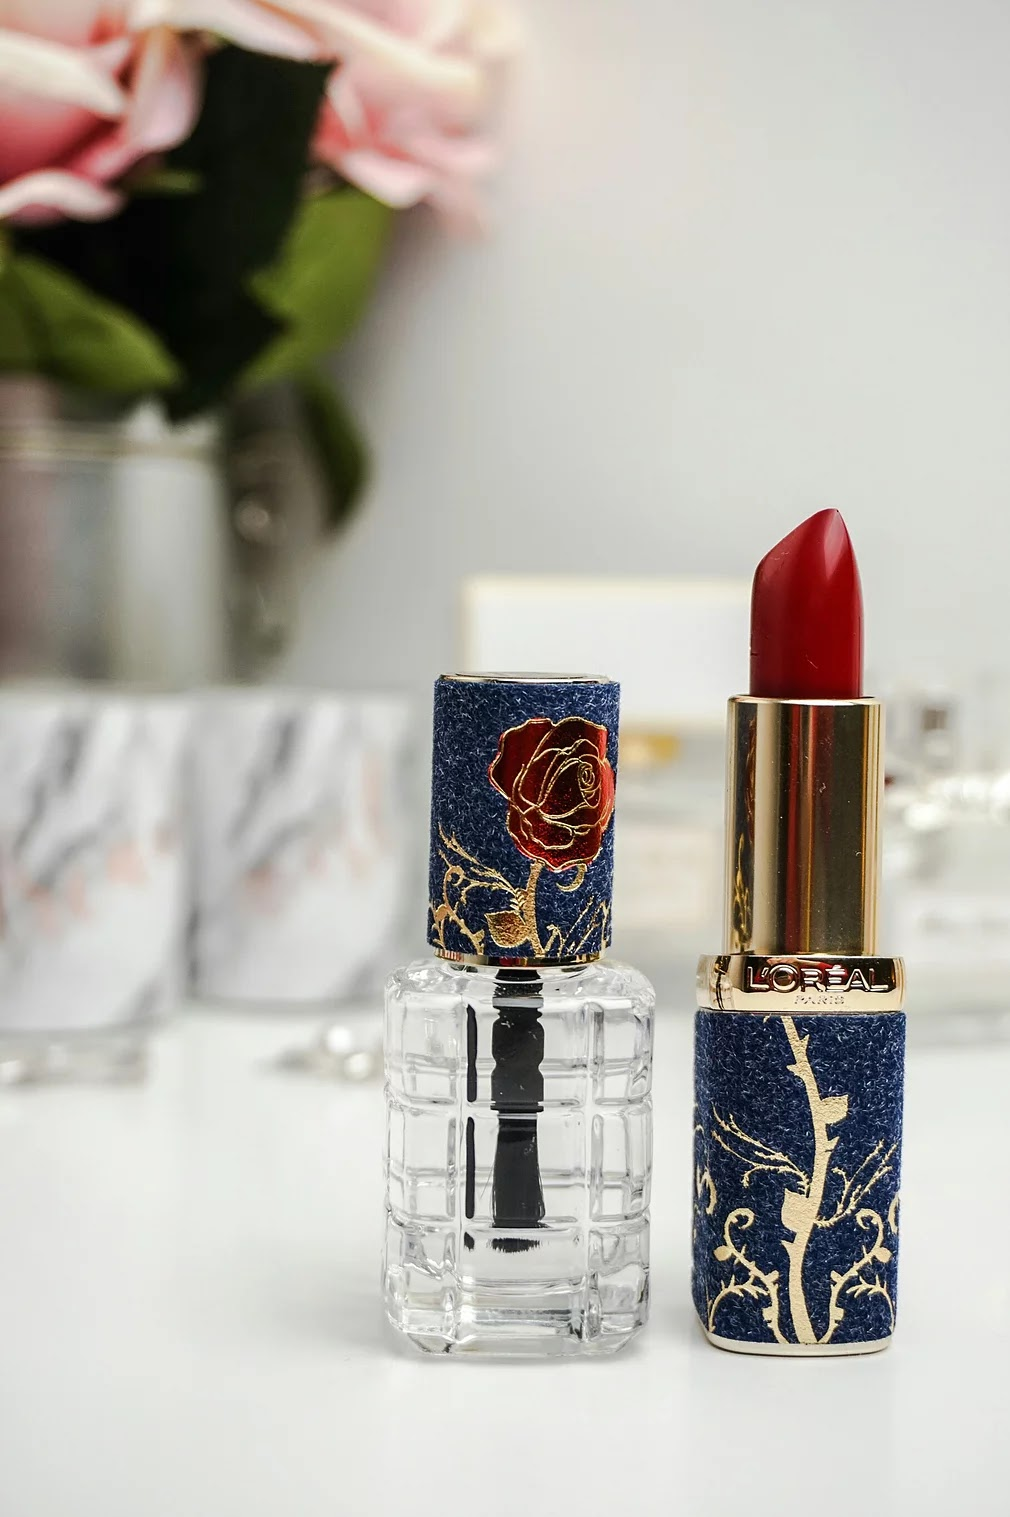 L'oreal Paris x beauty and the beast the rose collection